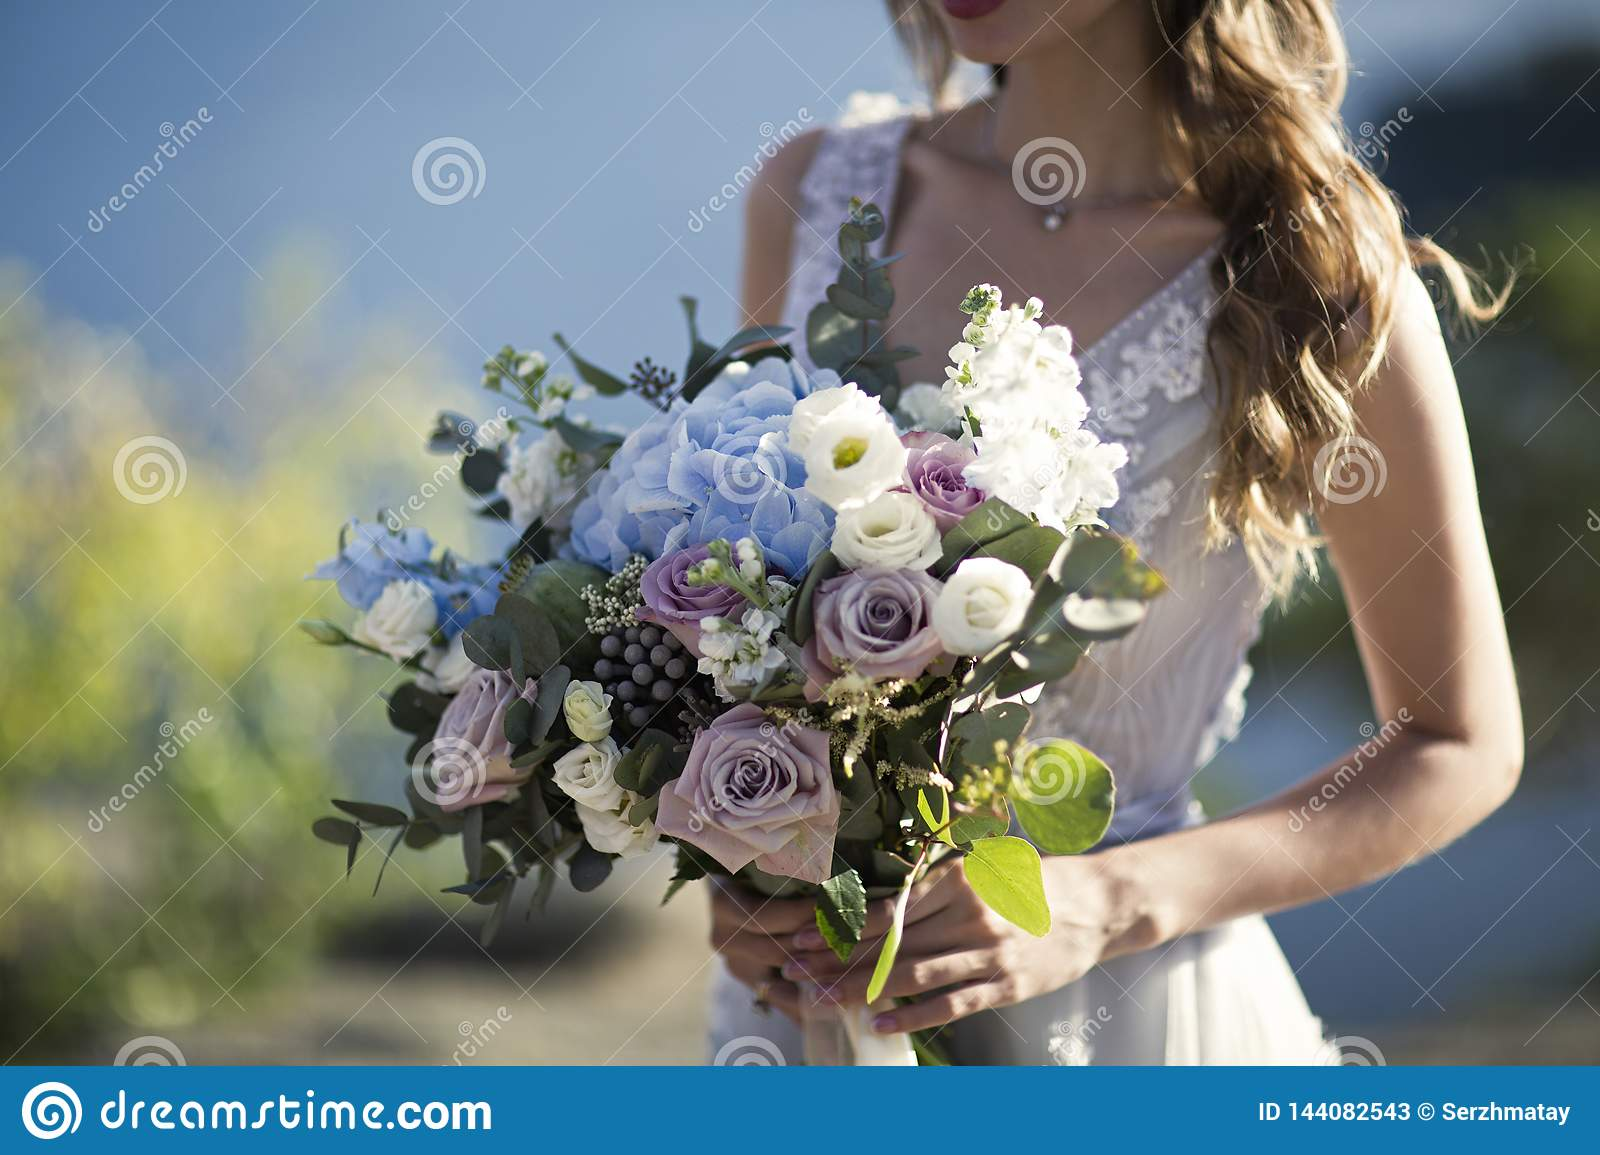 Bride holds wedding bouquet on nature background